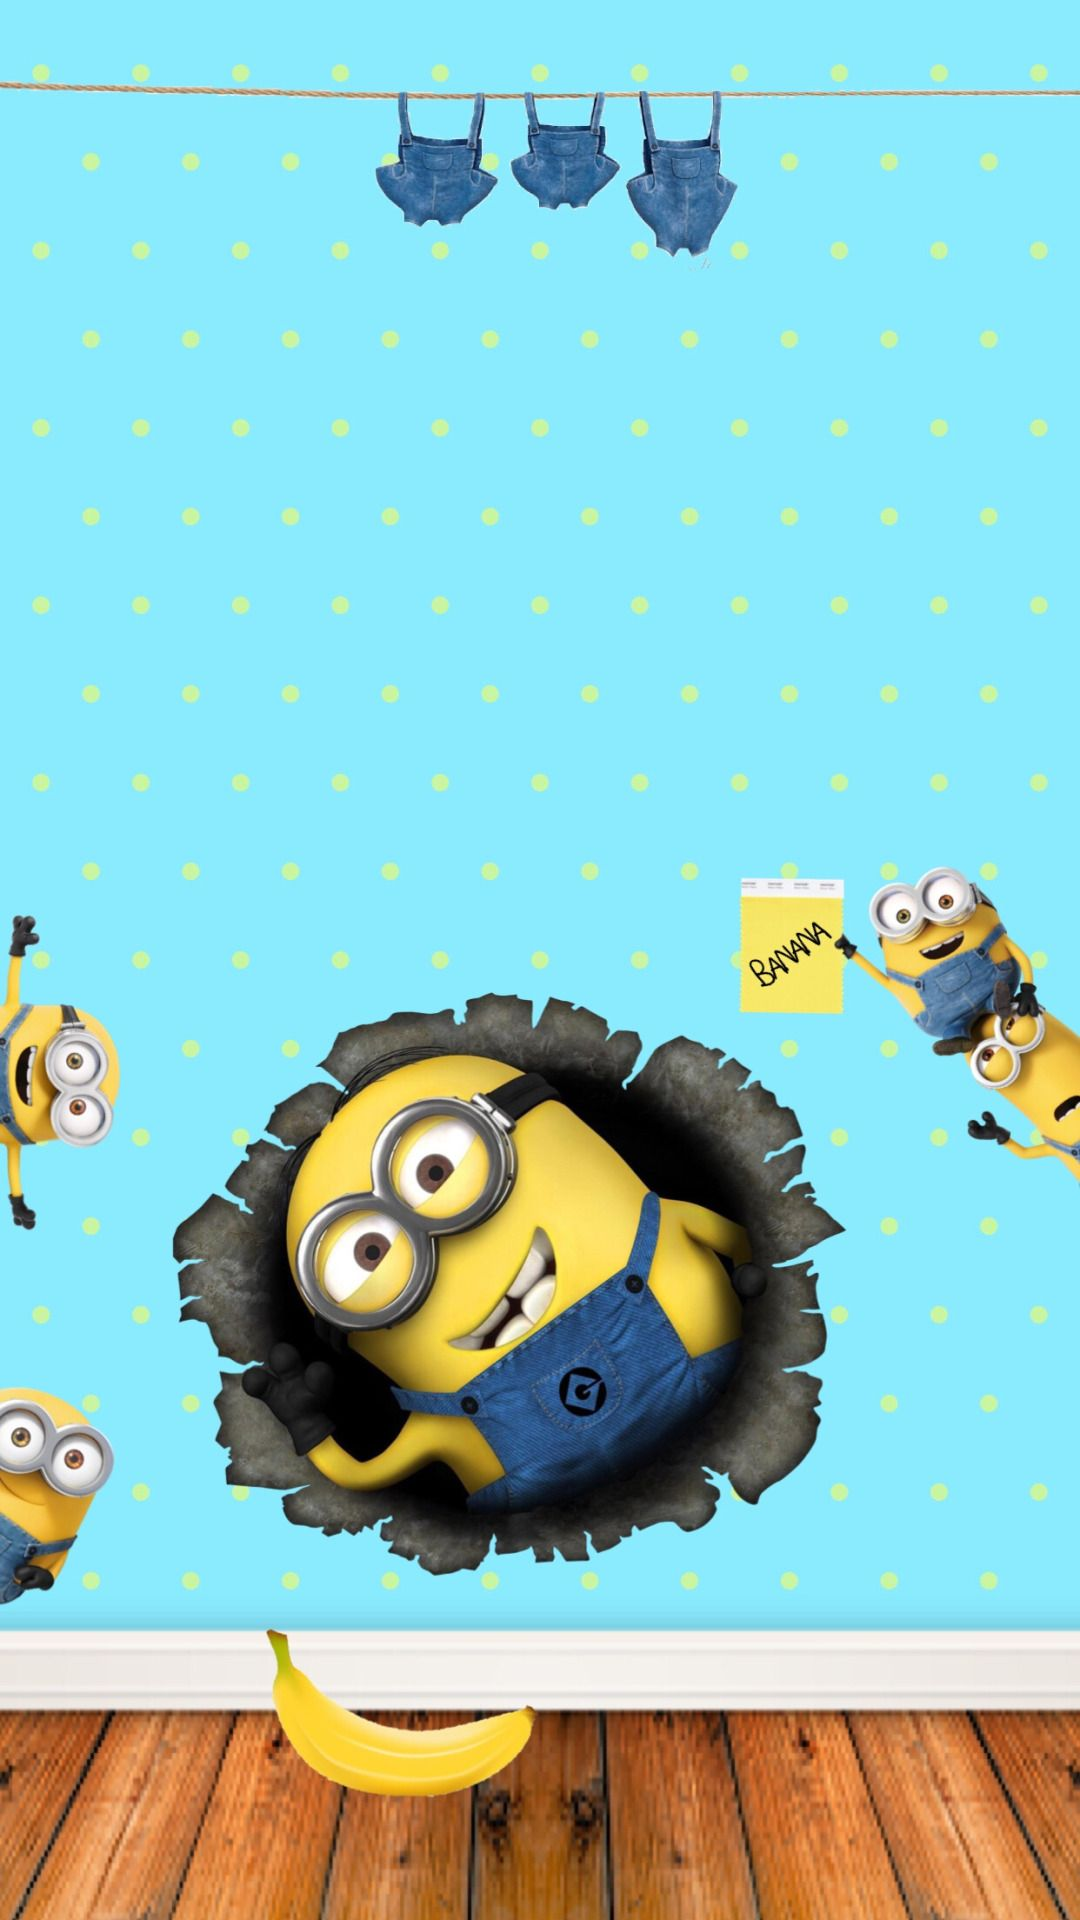 just fun wallpapers photo minions pinterest. Black Bedroom Furniture Sets. Home Design Ideas